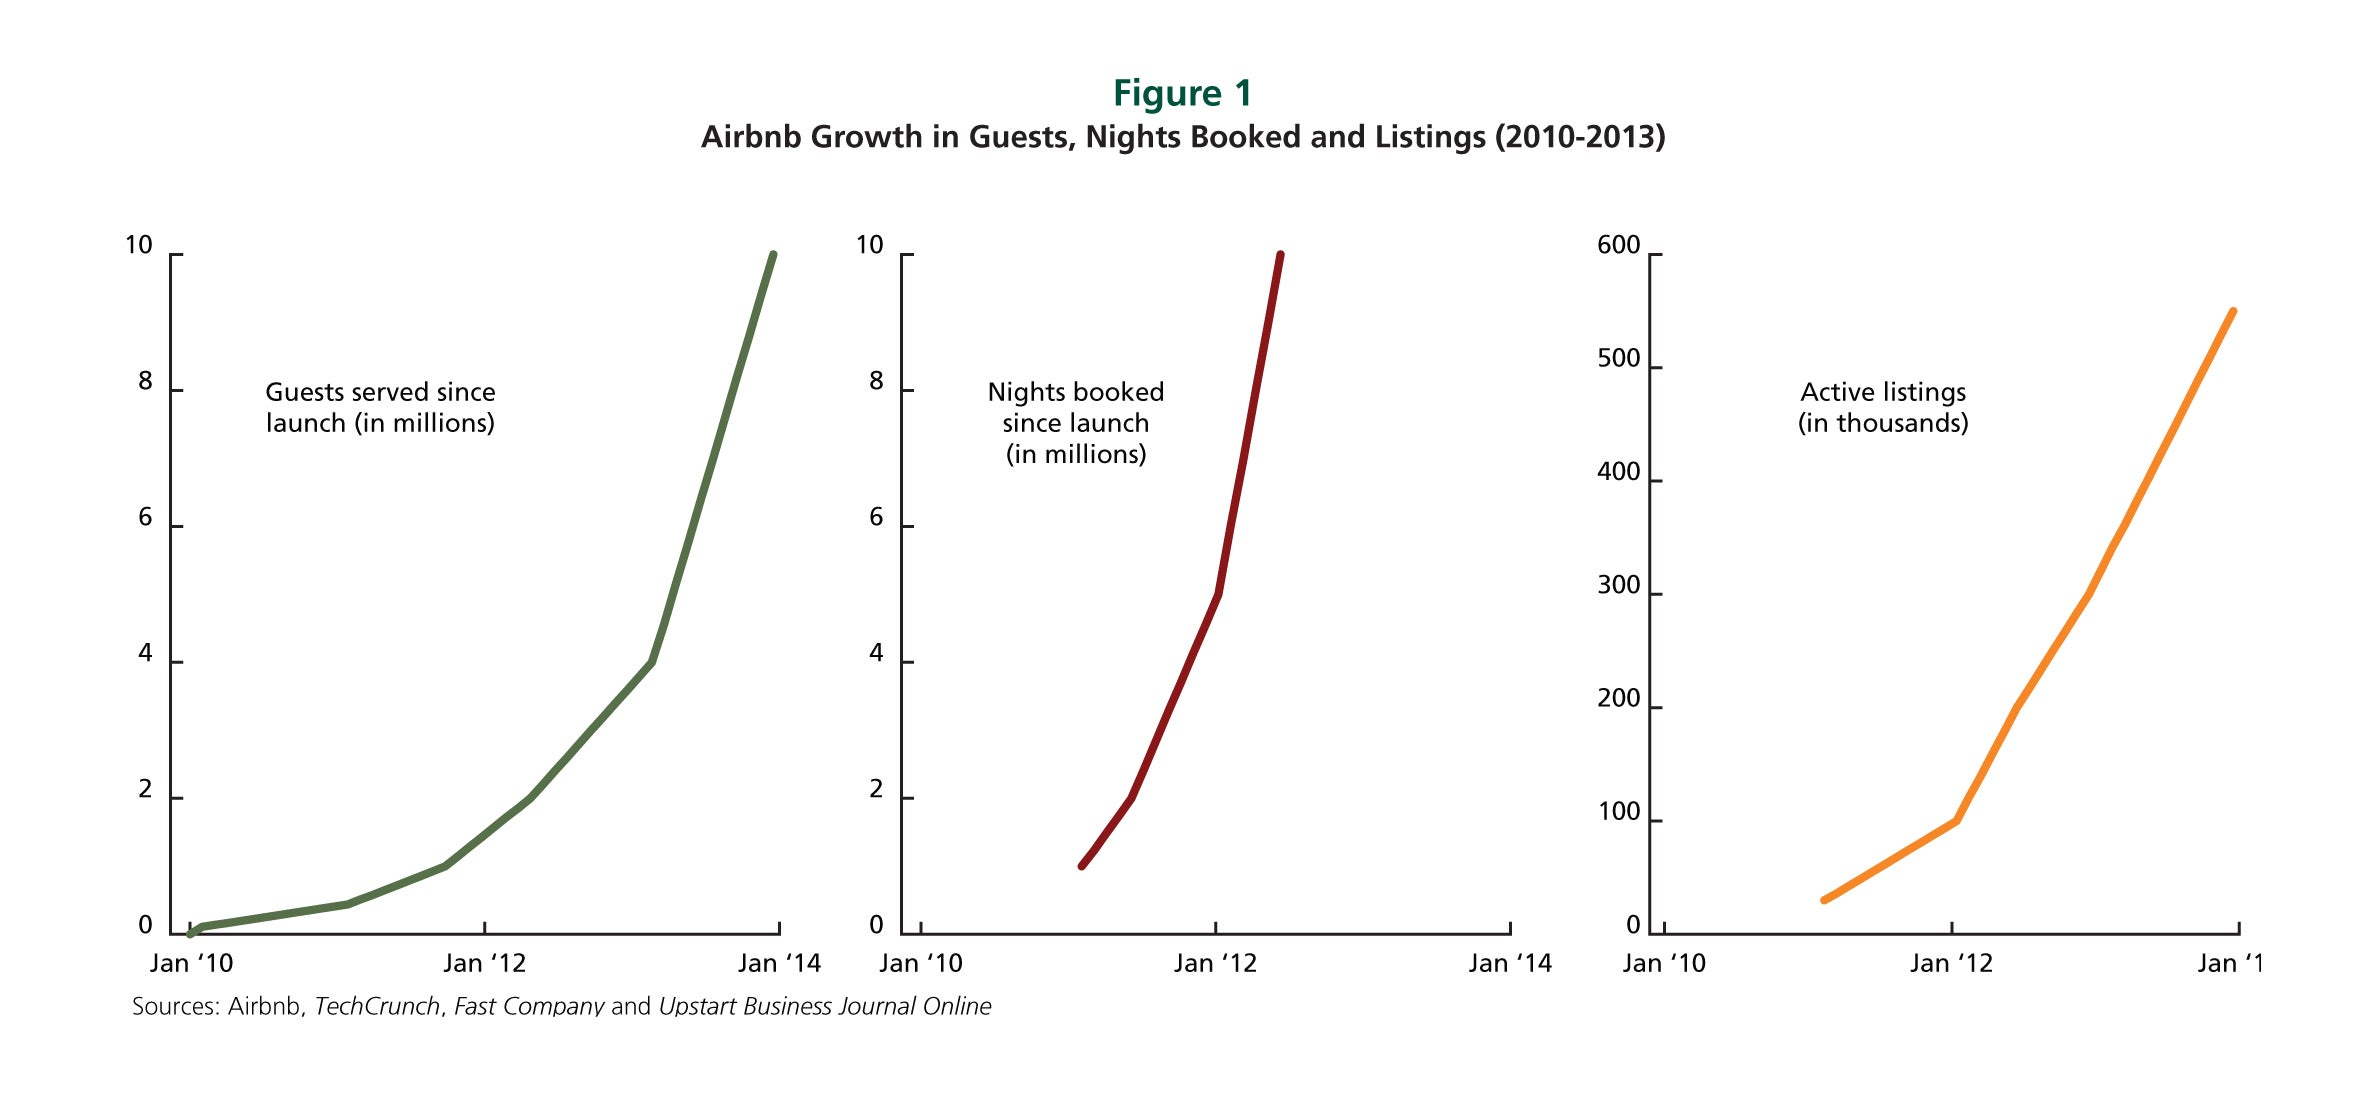 Airbnb Growth in Guests, Night Booked and Listings